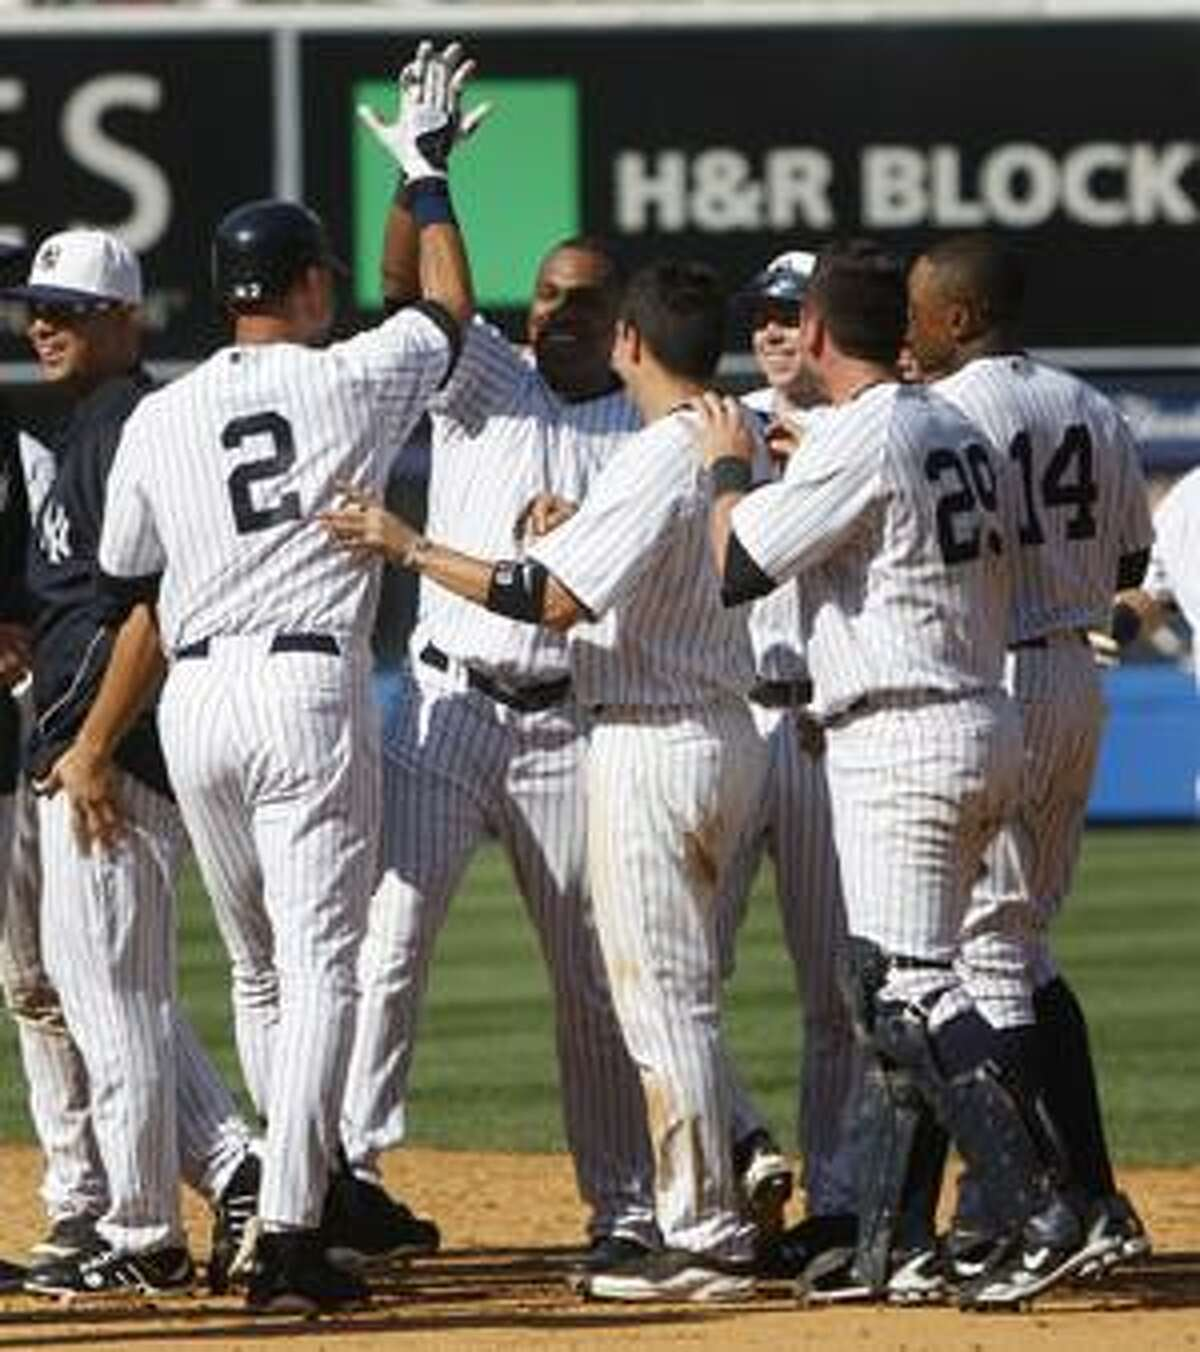 New York Yankees' Marcus Thames, third from left, is greeted by teammate Derek Jeter, second from left, after hitting a single to drive in the winning run during the tenth inning of the baseball game against the Toronto Blue Jays, Sunday, July 4, 2010, at Yankee Stadium in New York. (AP Photo/Seth Wenig)